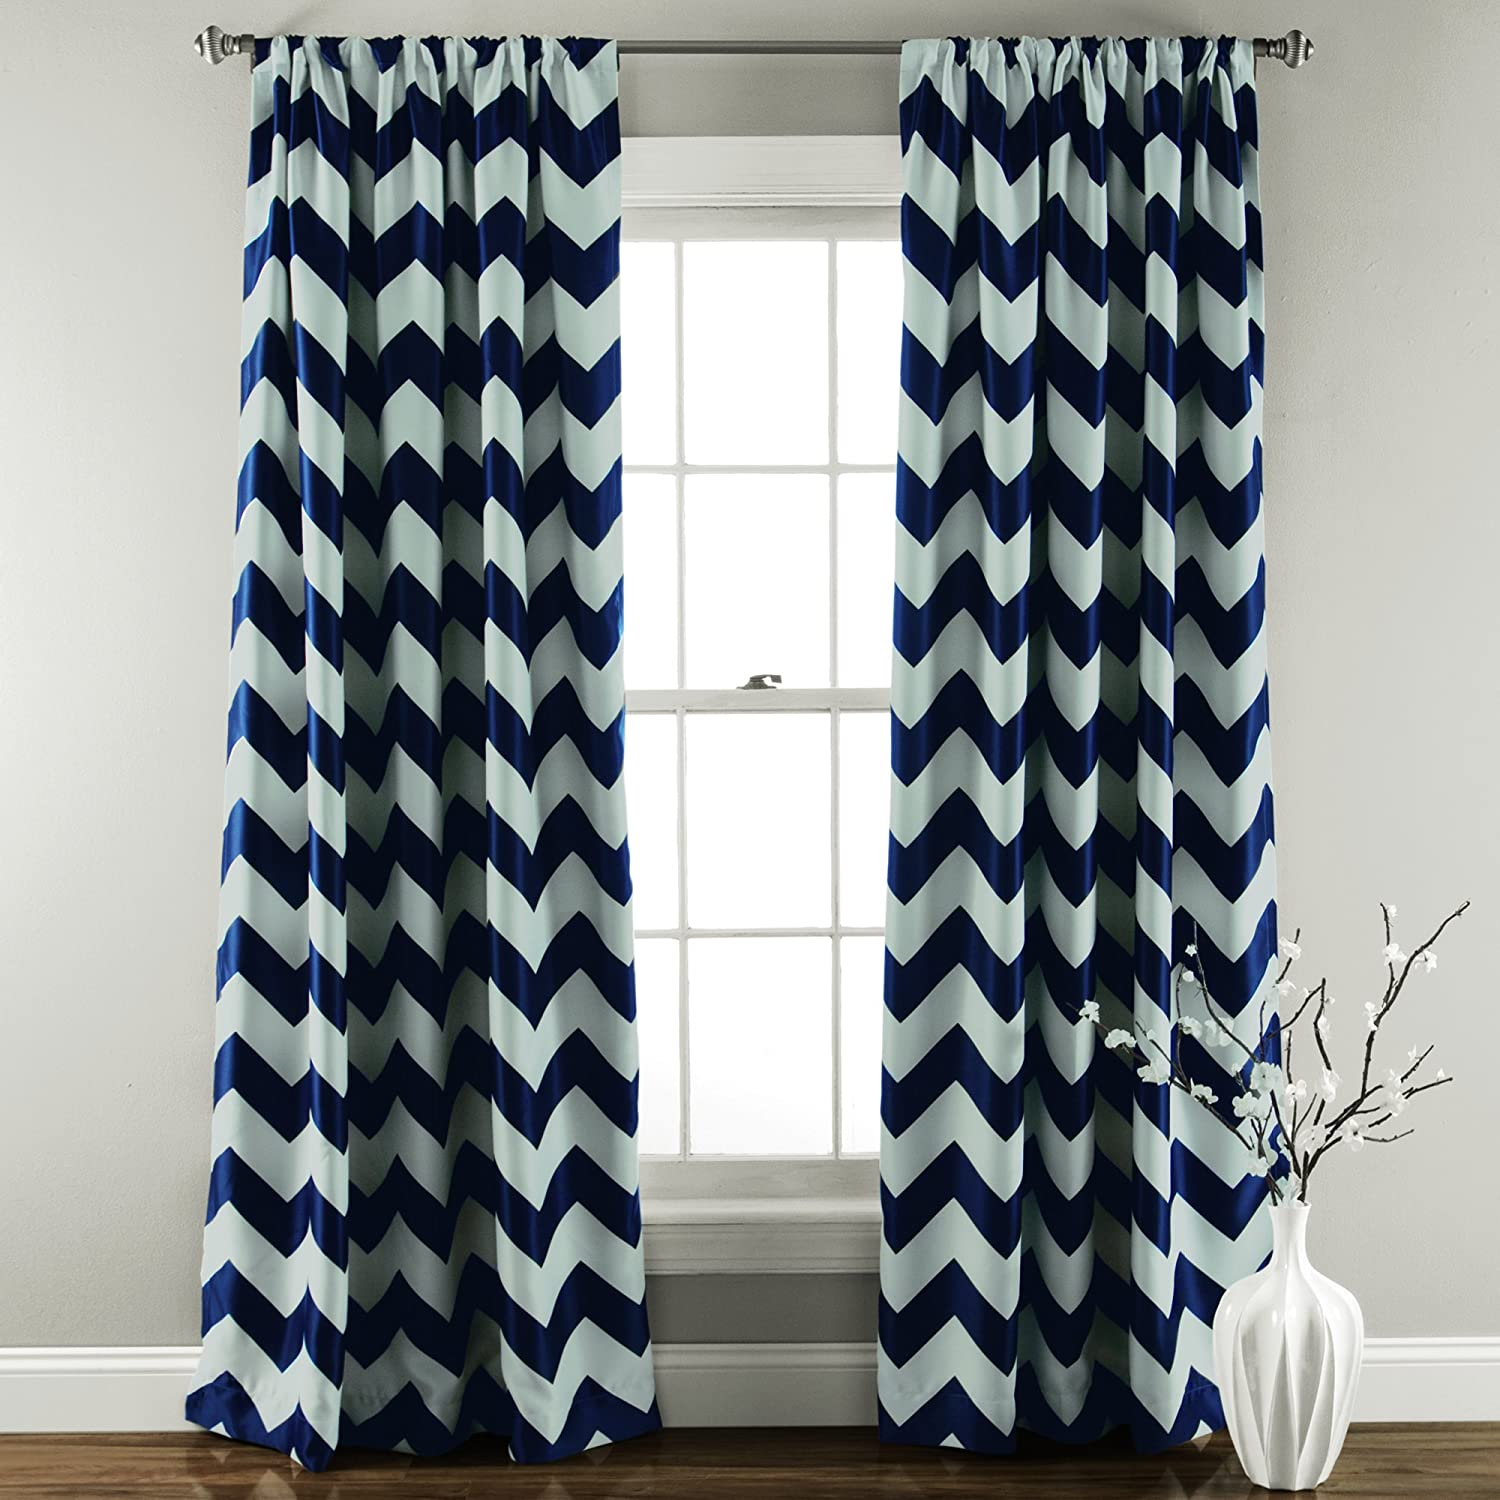 Navy curtains blackout - Amazon Com Lush Decor Chevron Blackout Window Curtain 84 By 52 Inch Gray Set Of 2 Home Kitchen